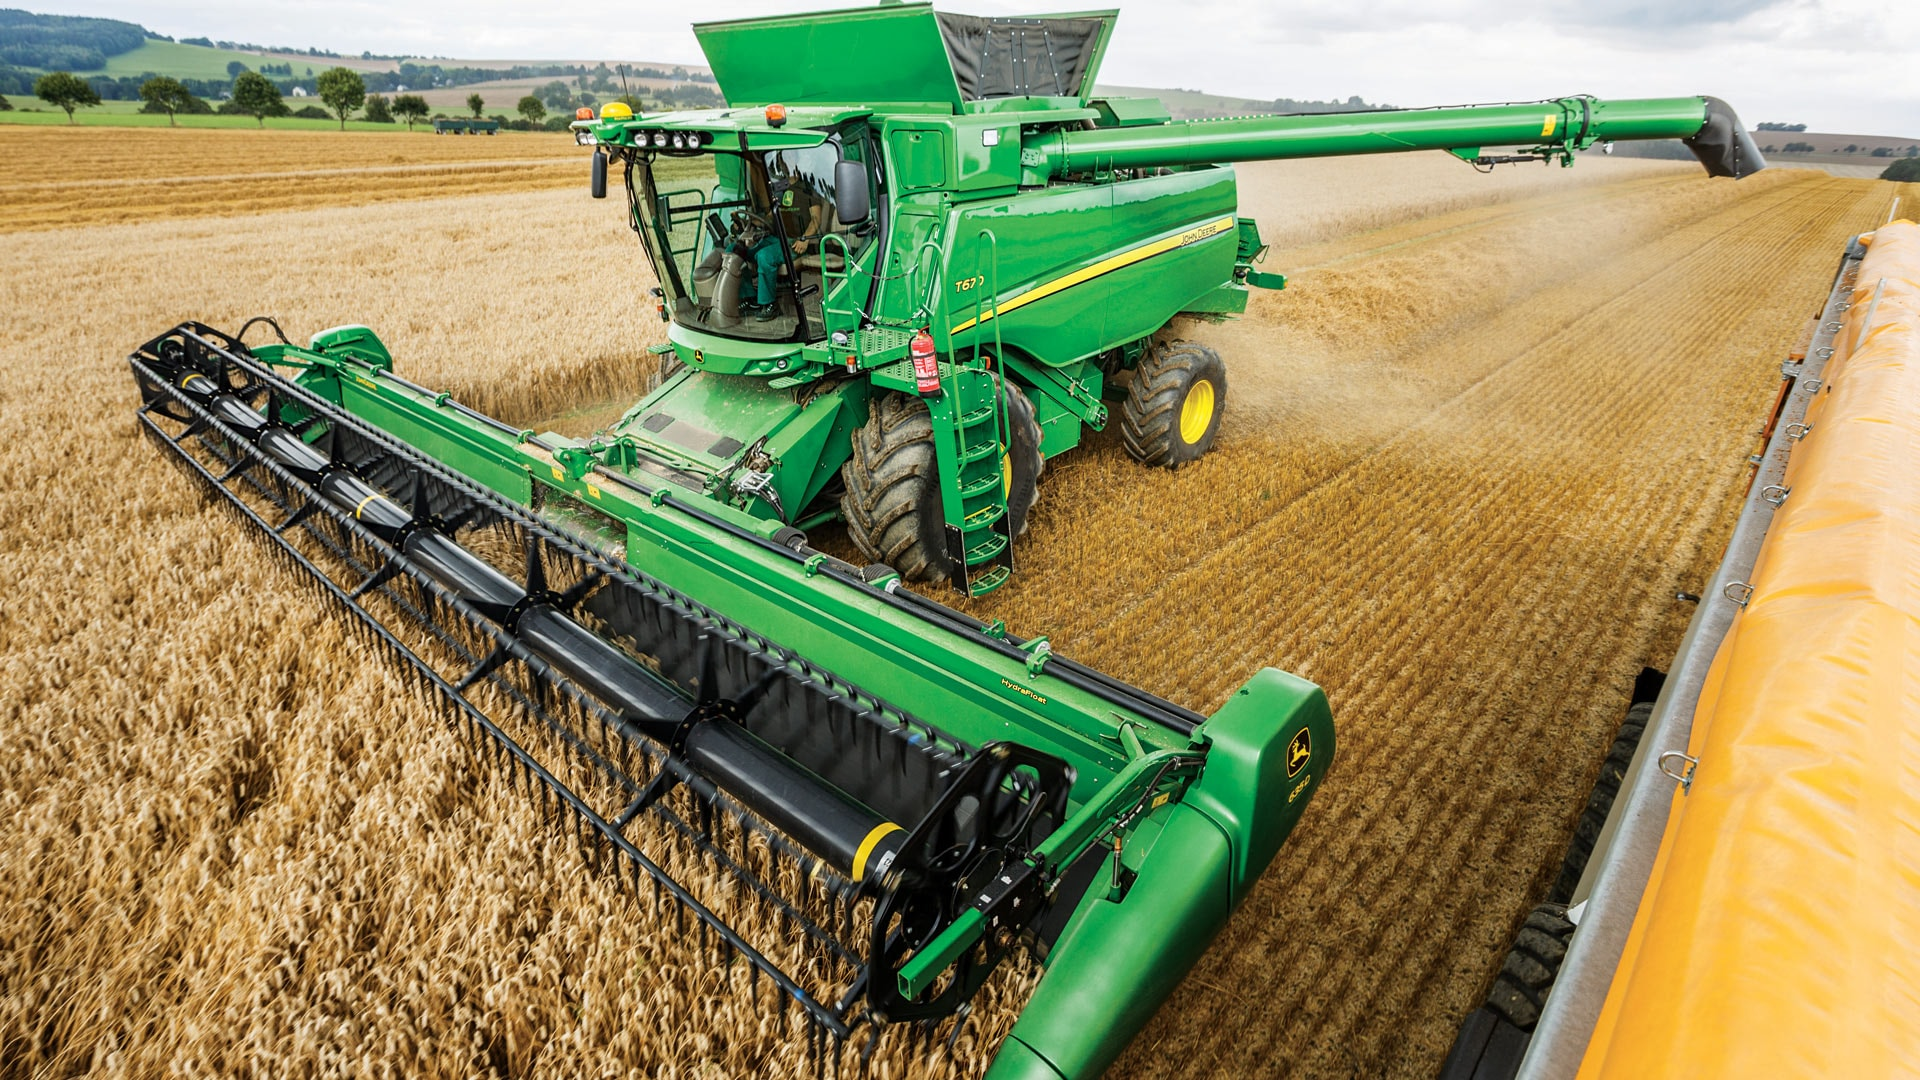 T Series Combine Moving through crops